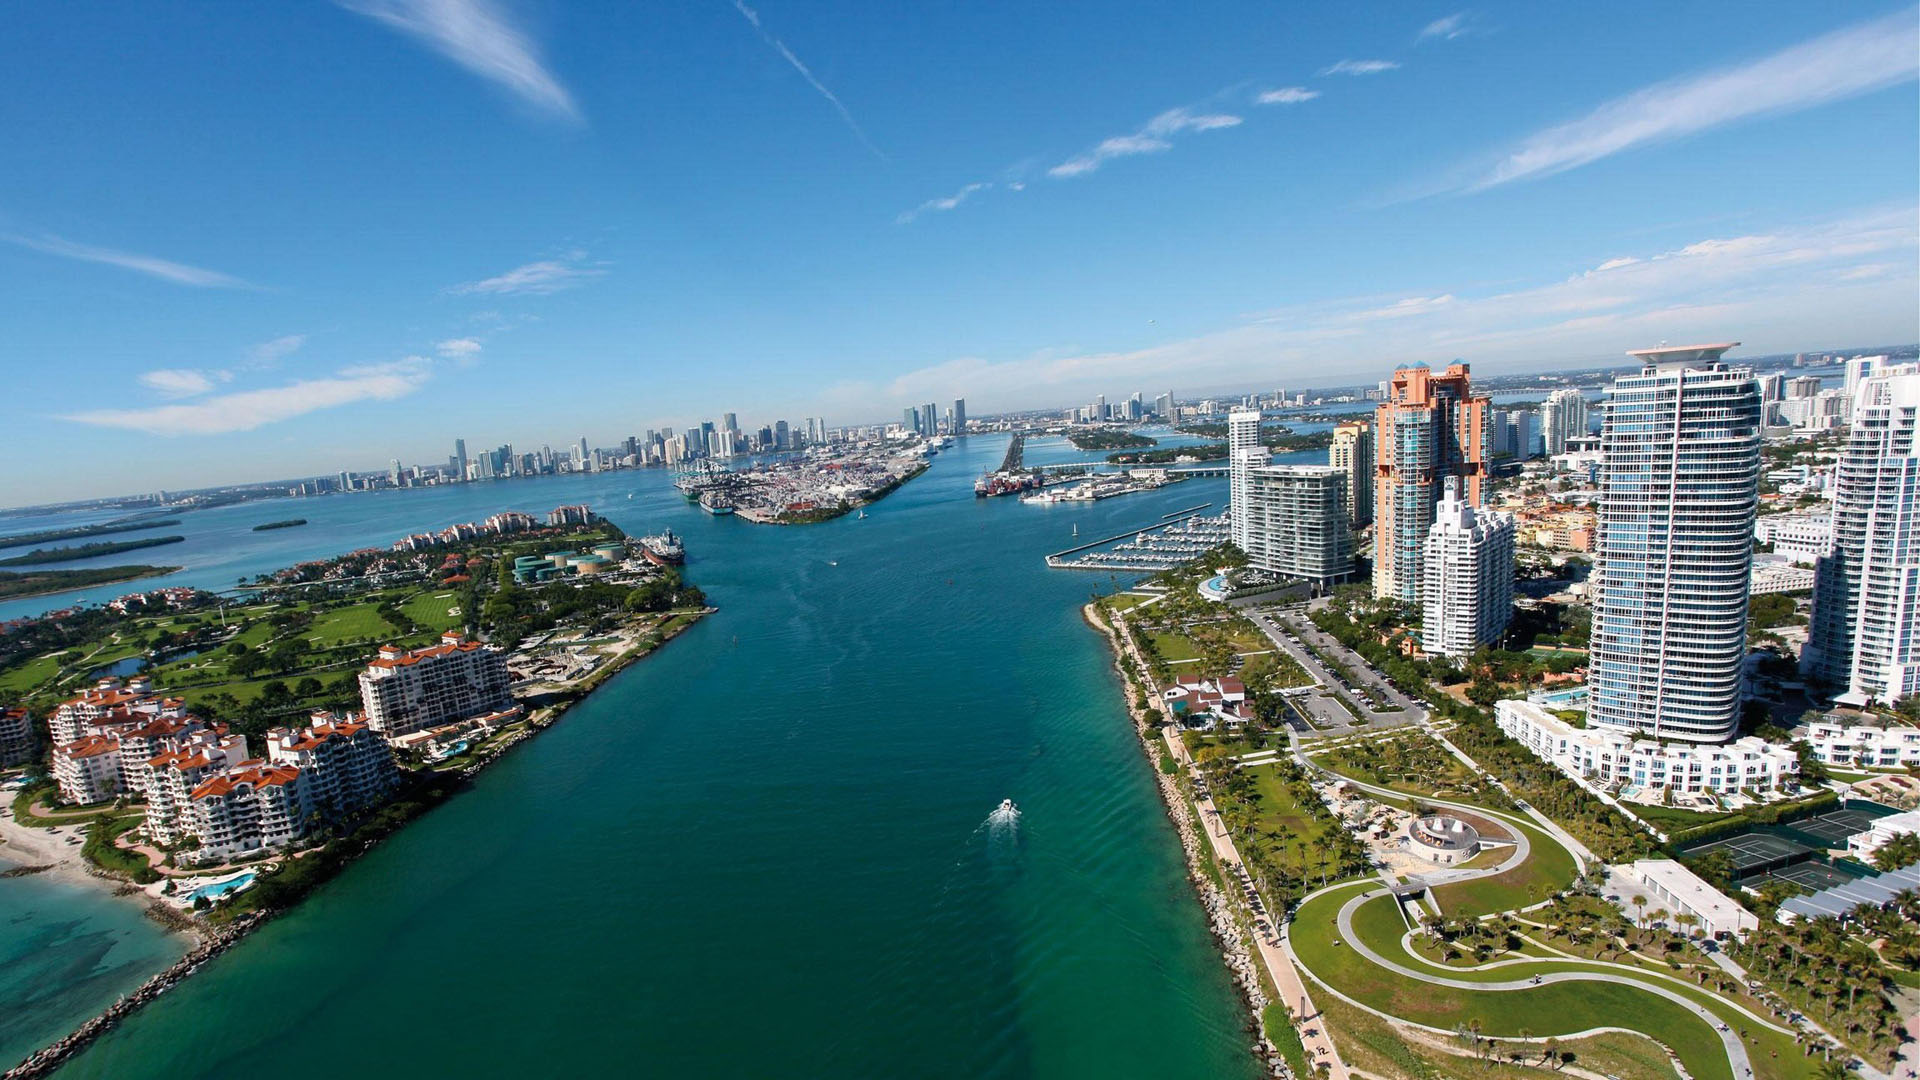 miami-city-hd1080p-picture.jpg